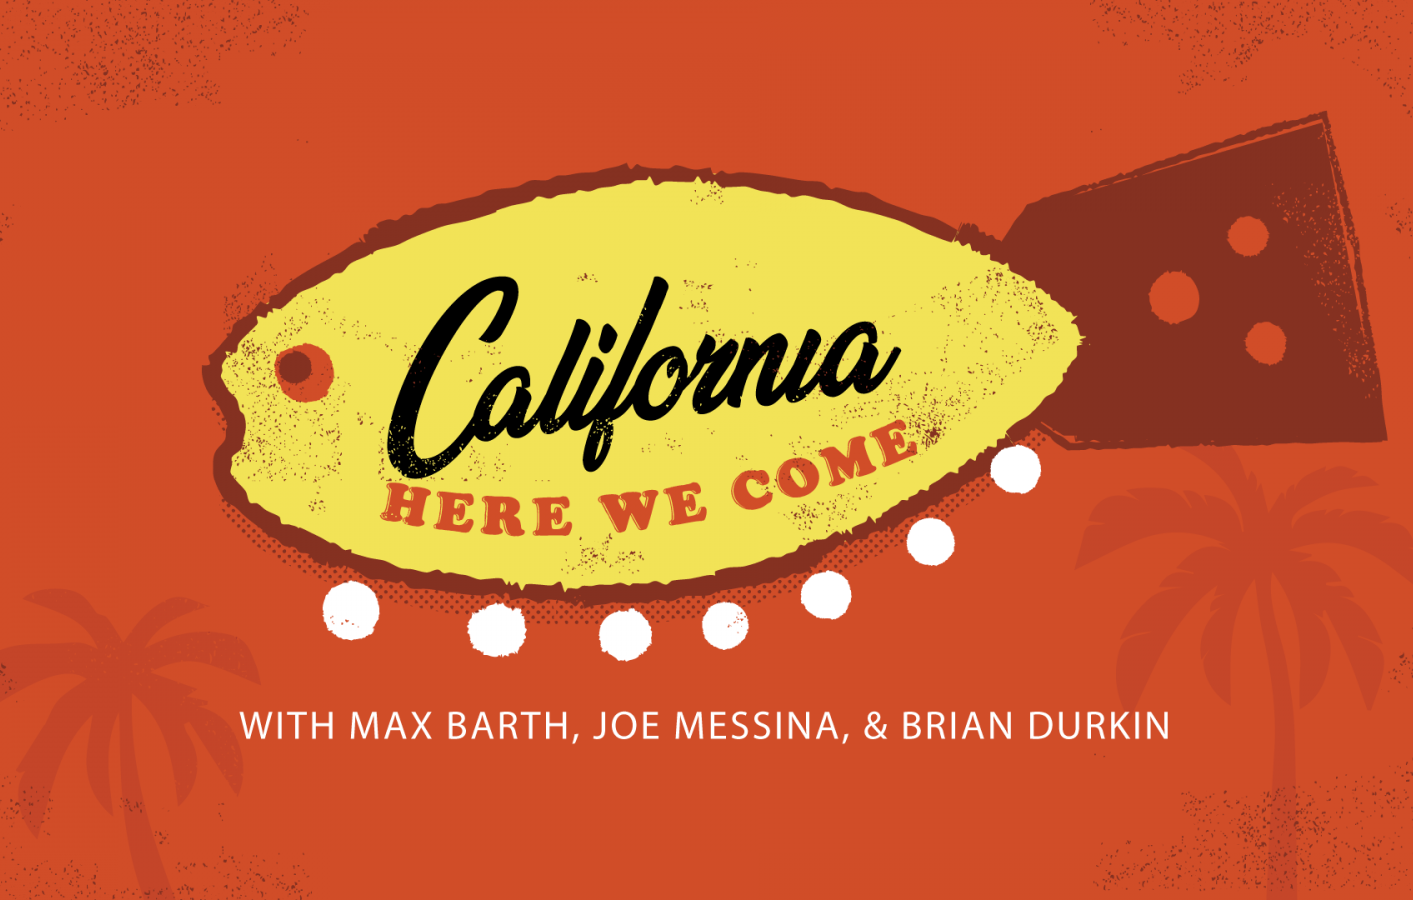 California Here We Come Podcast created by Max Barth, Joe Messina, & Brian Durkin